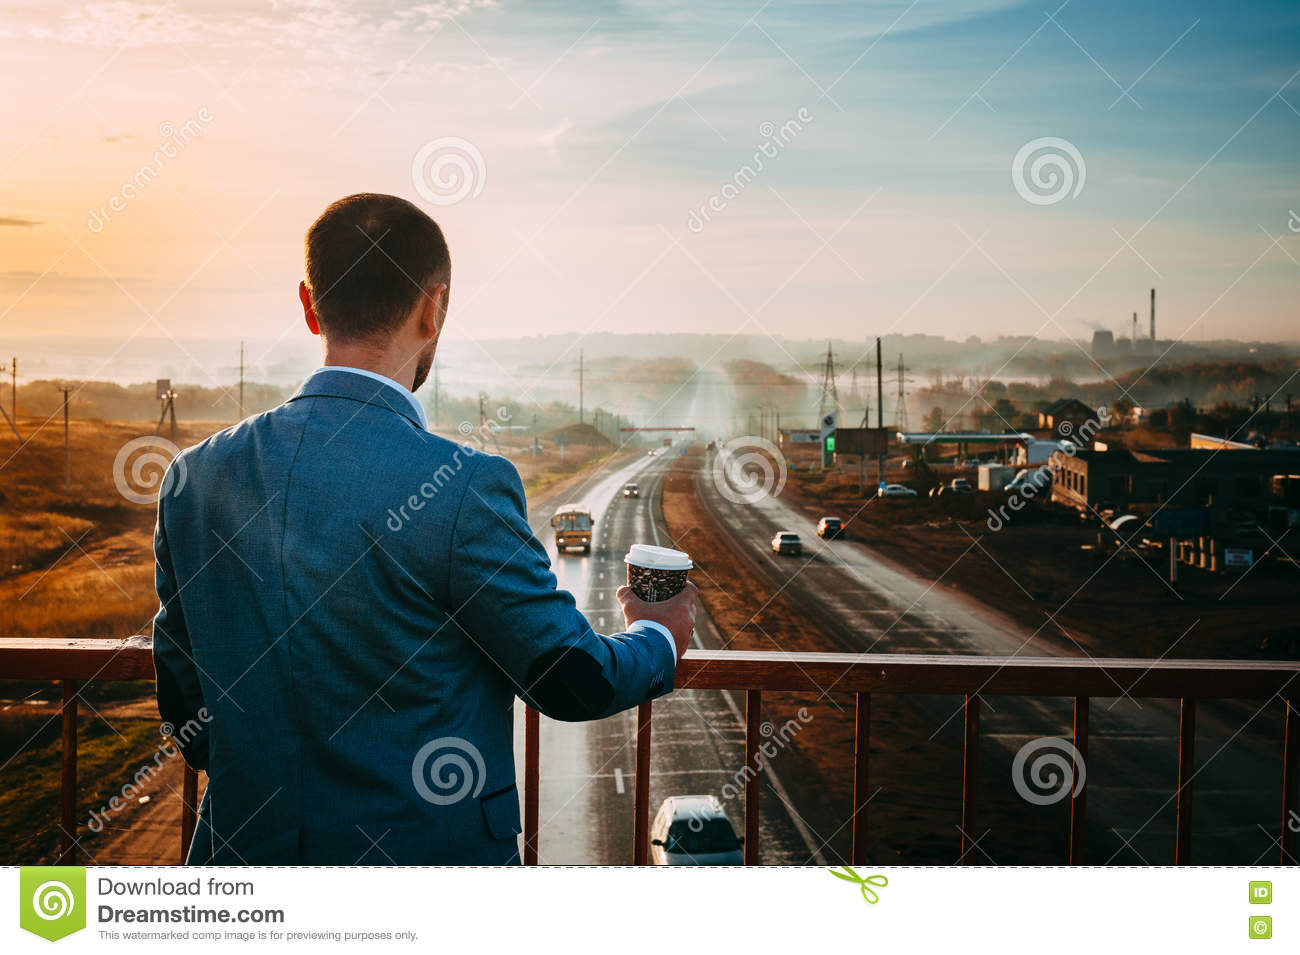 Man with Cup of coffee on the bridge. Early morning, the sunrise, the road disappears in the distance.